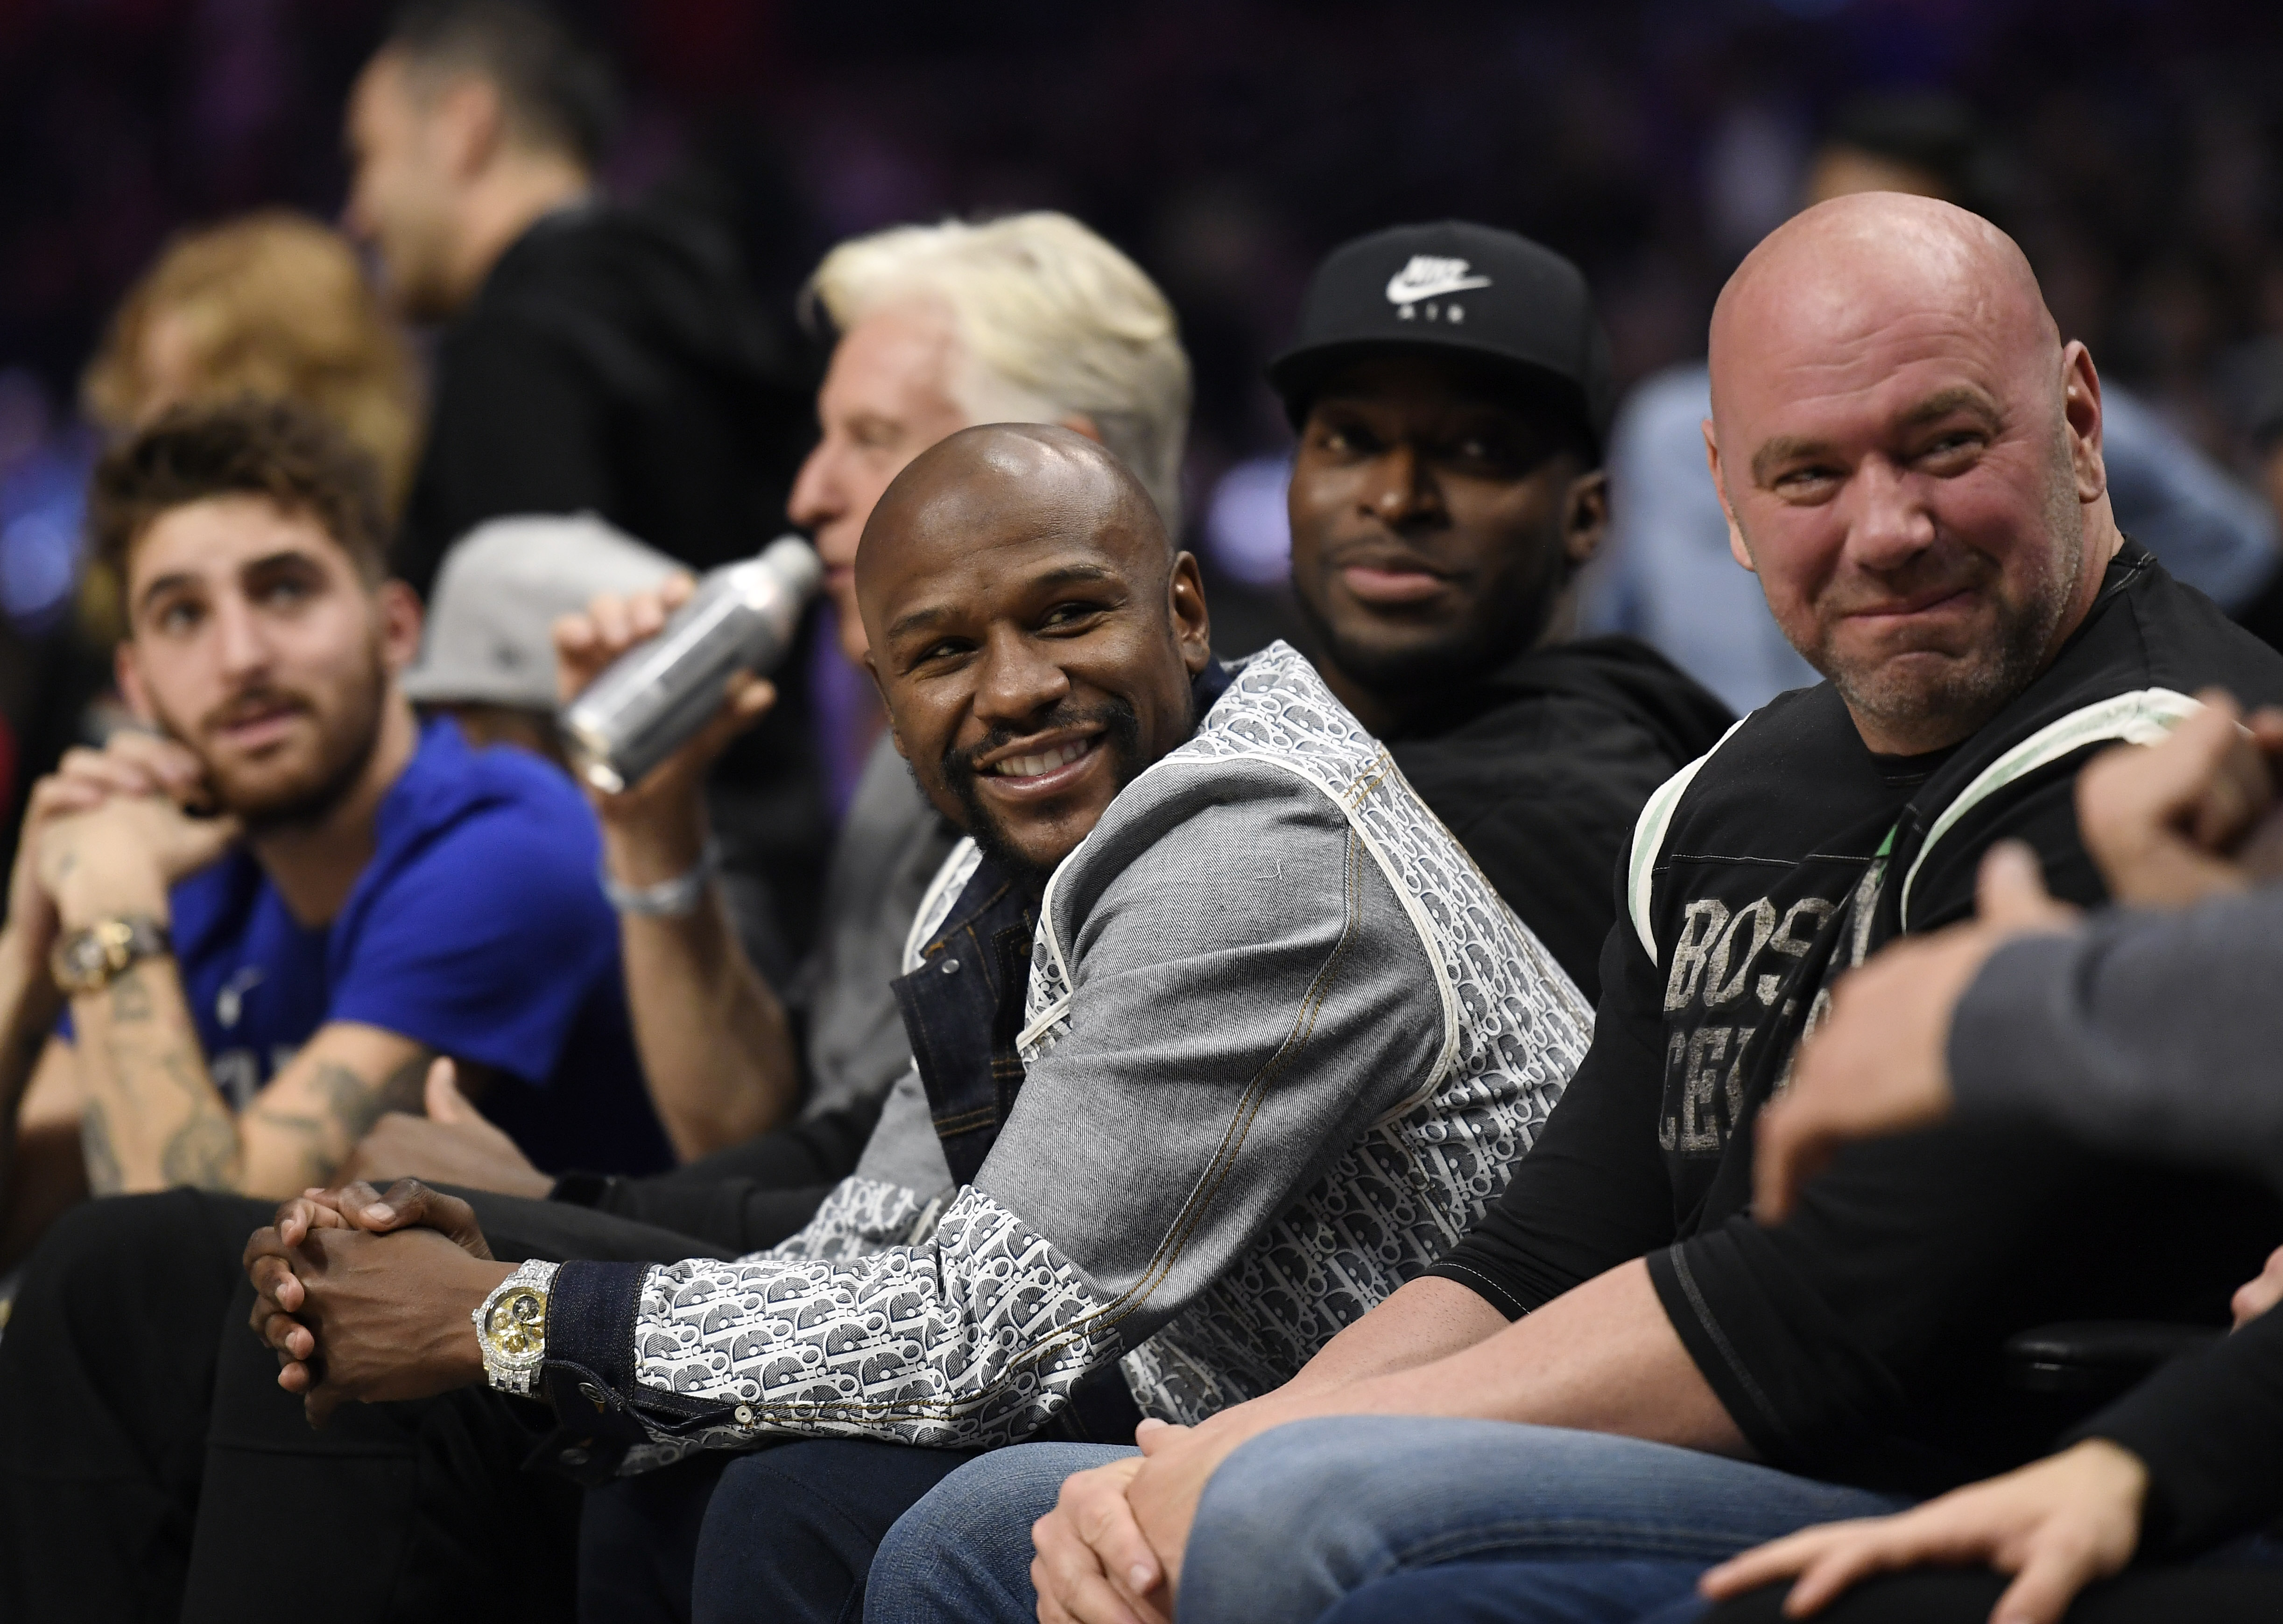 Floyd Mayweather Spent Over $40,000 to Own the Biggest Chanel Purse in the World